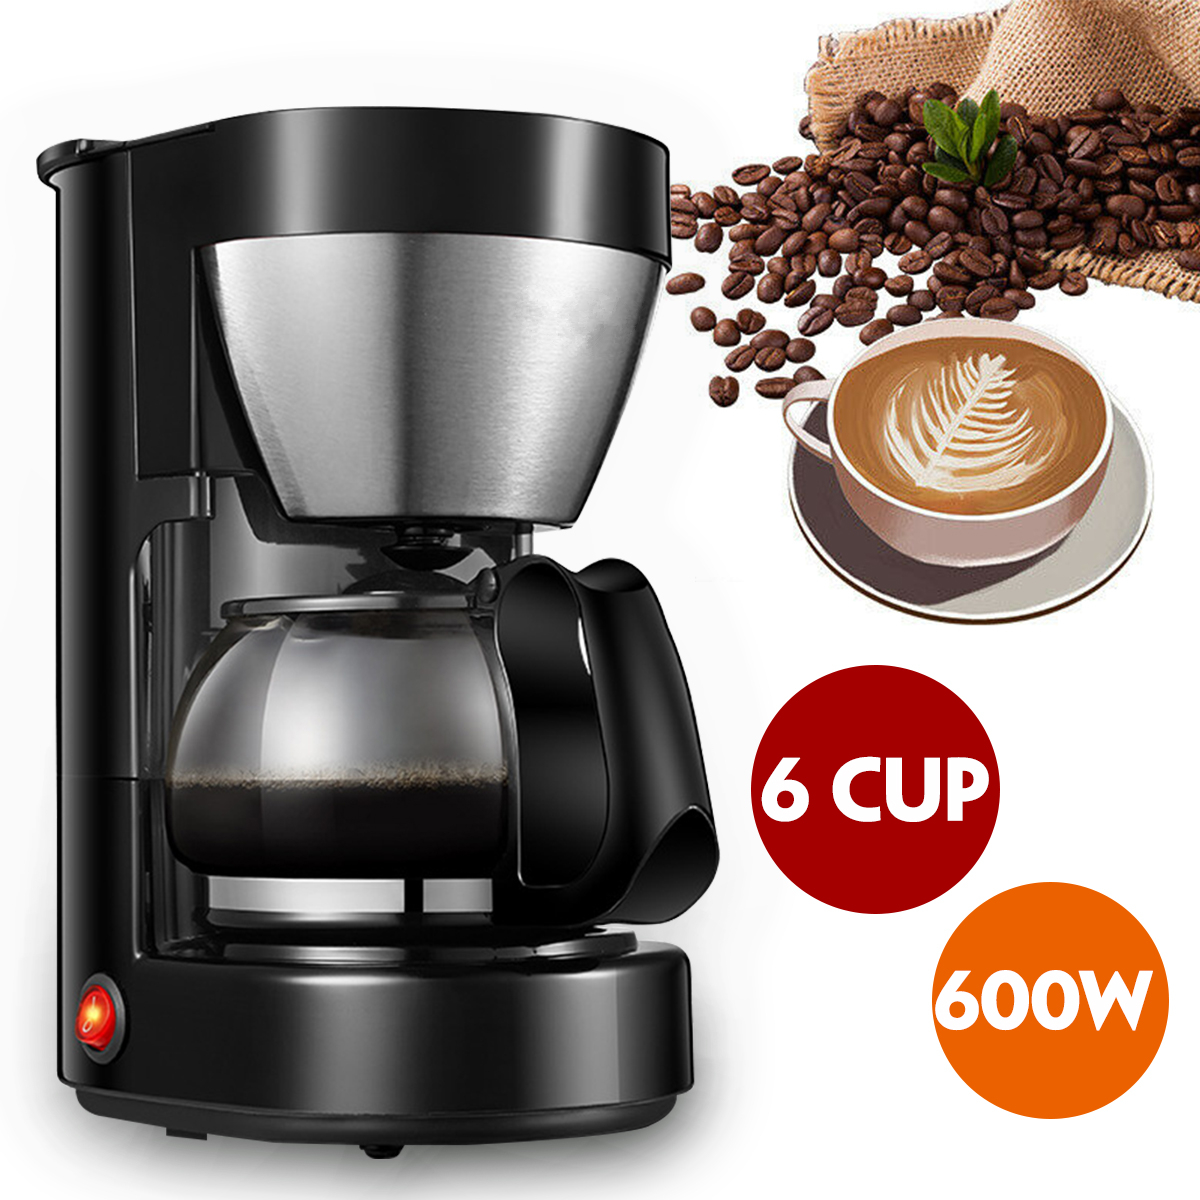 600W Electric Drip Coffee Maker Office Coffee Maker Househole Coffee Machines With High Borosilicate Glass Coffee Pot